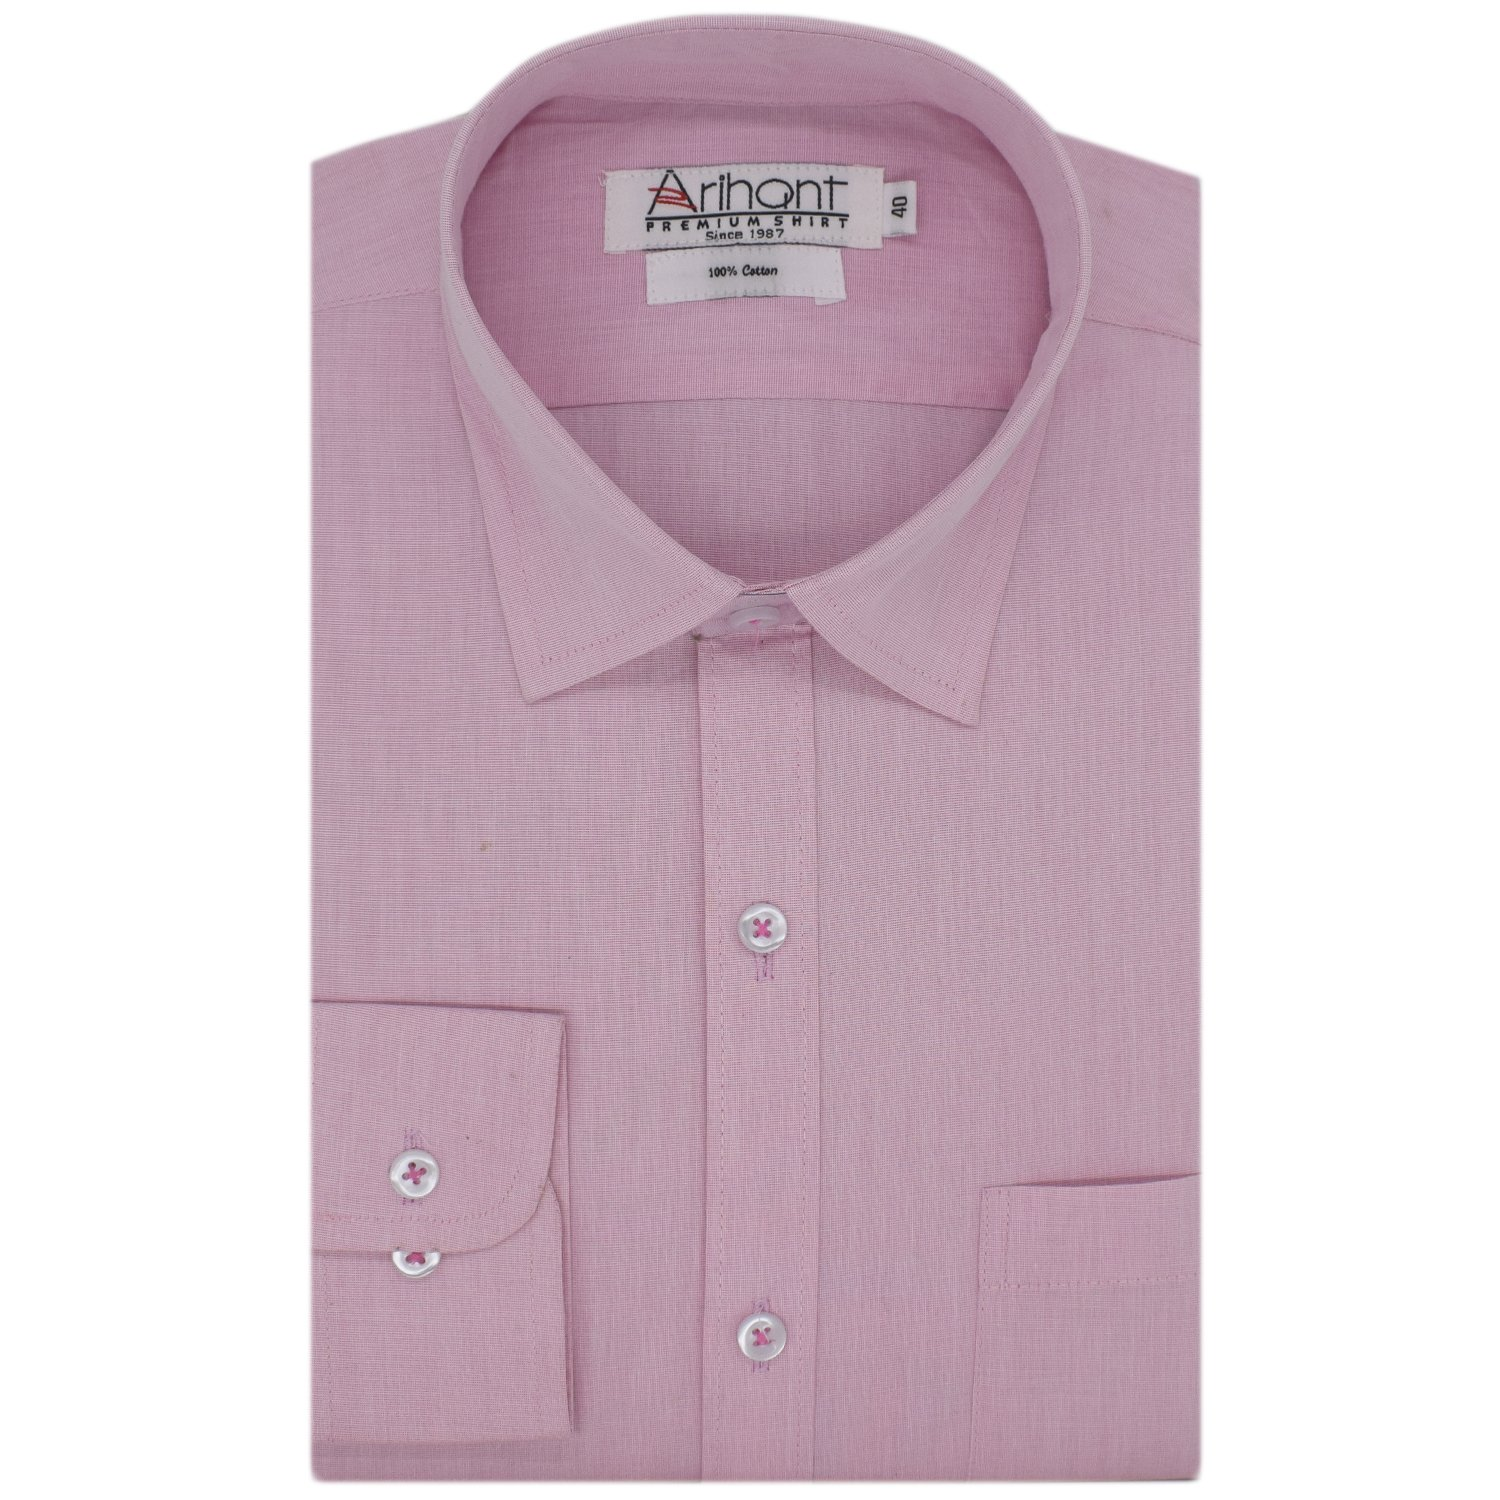 ea1366f0 Arihant Men's Cotton Full Sleeves Shirt: Amazon.in: Clothing & Accessories